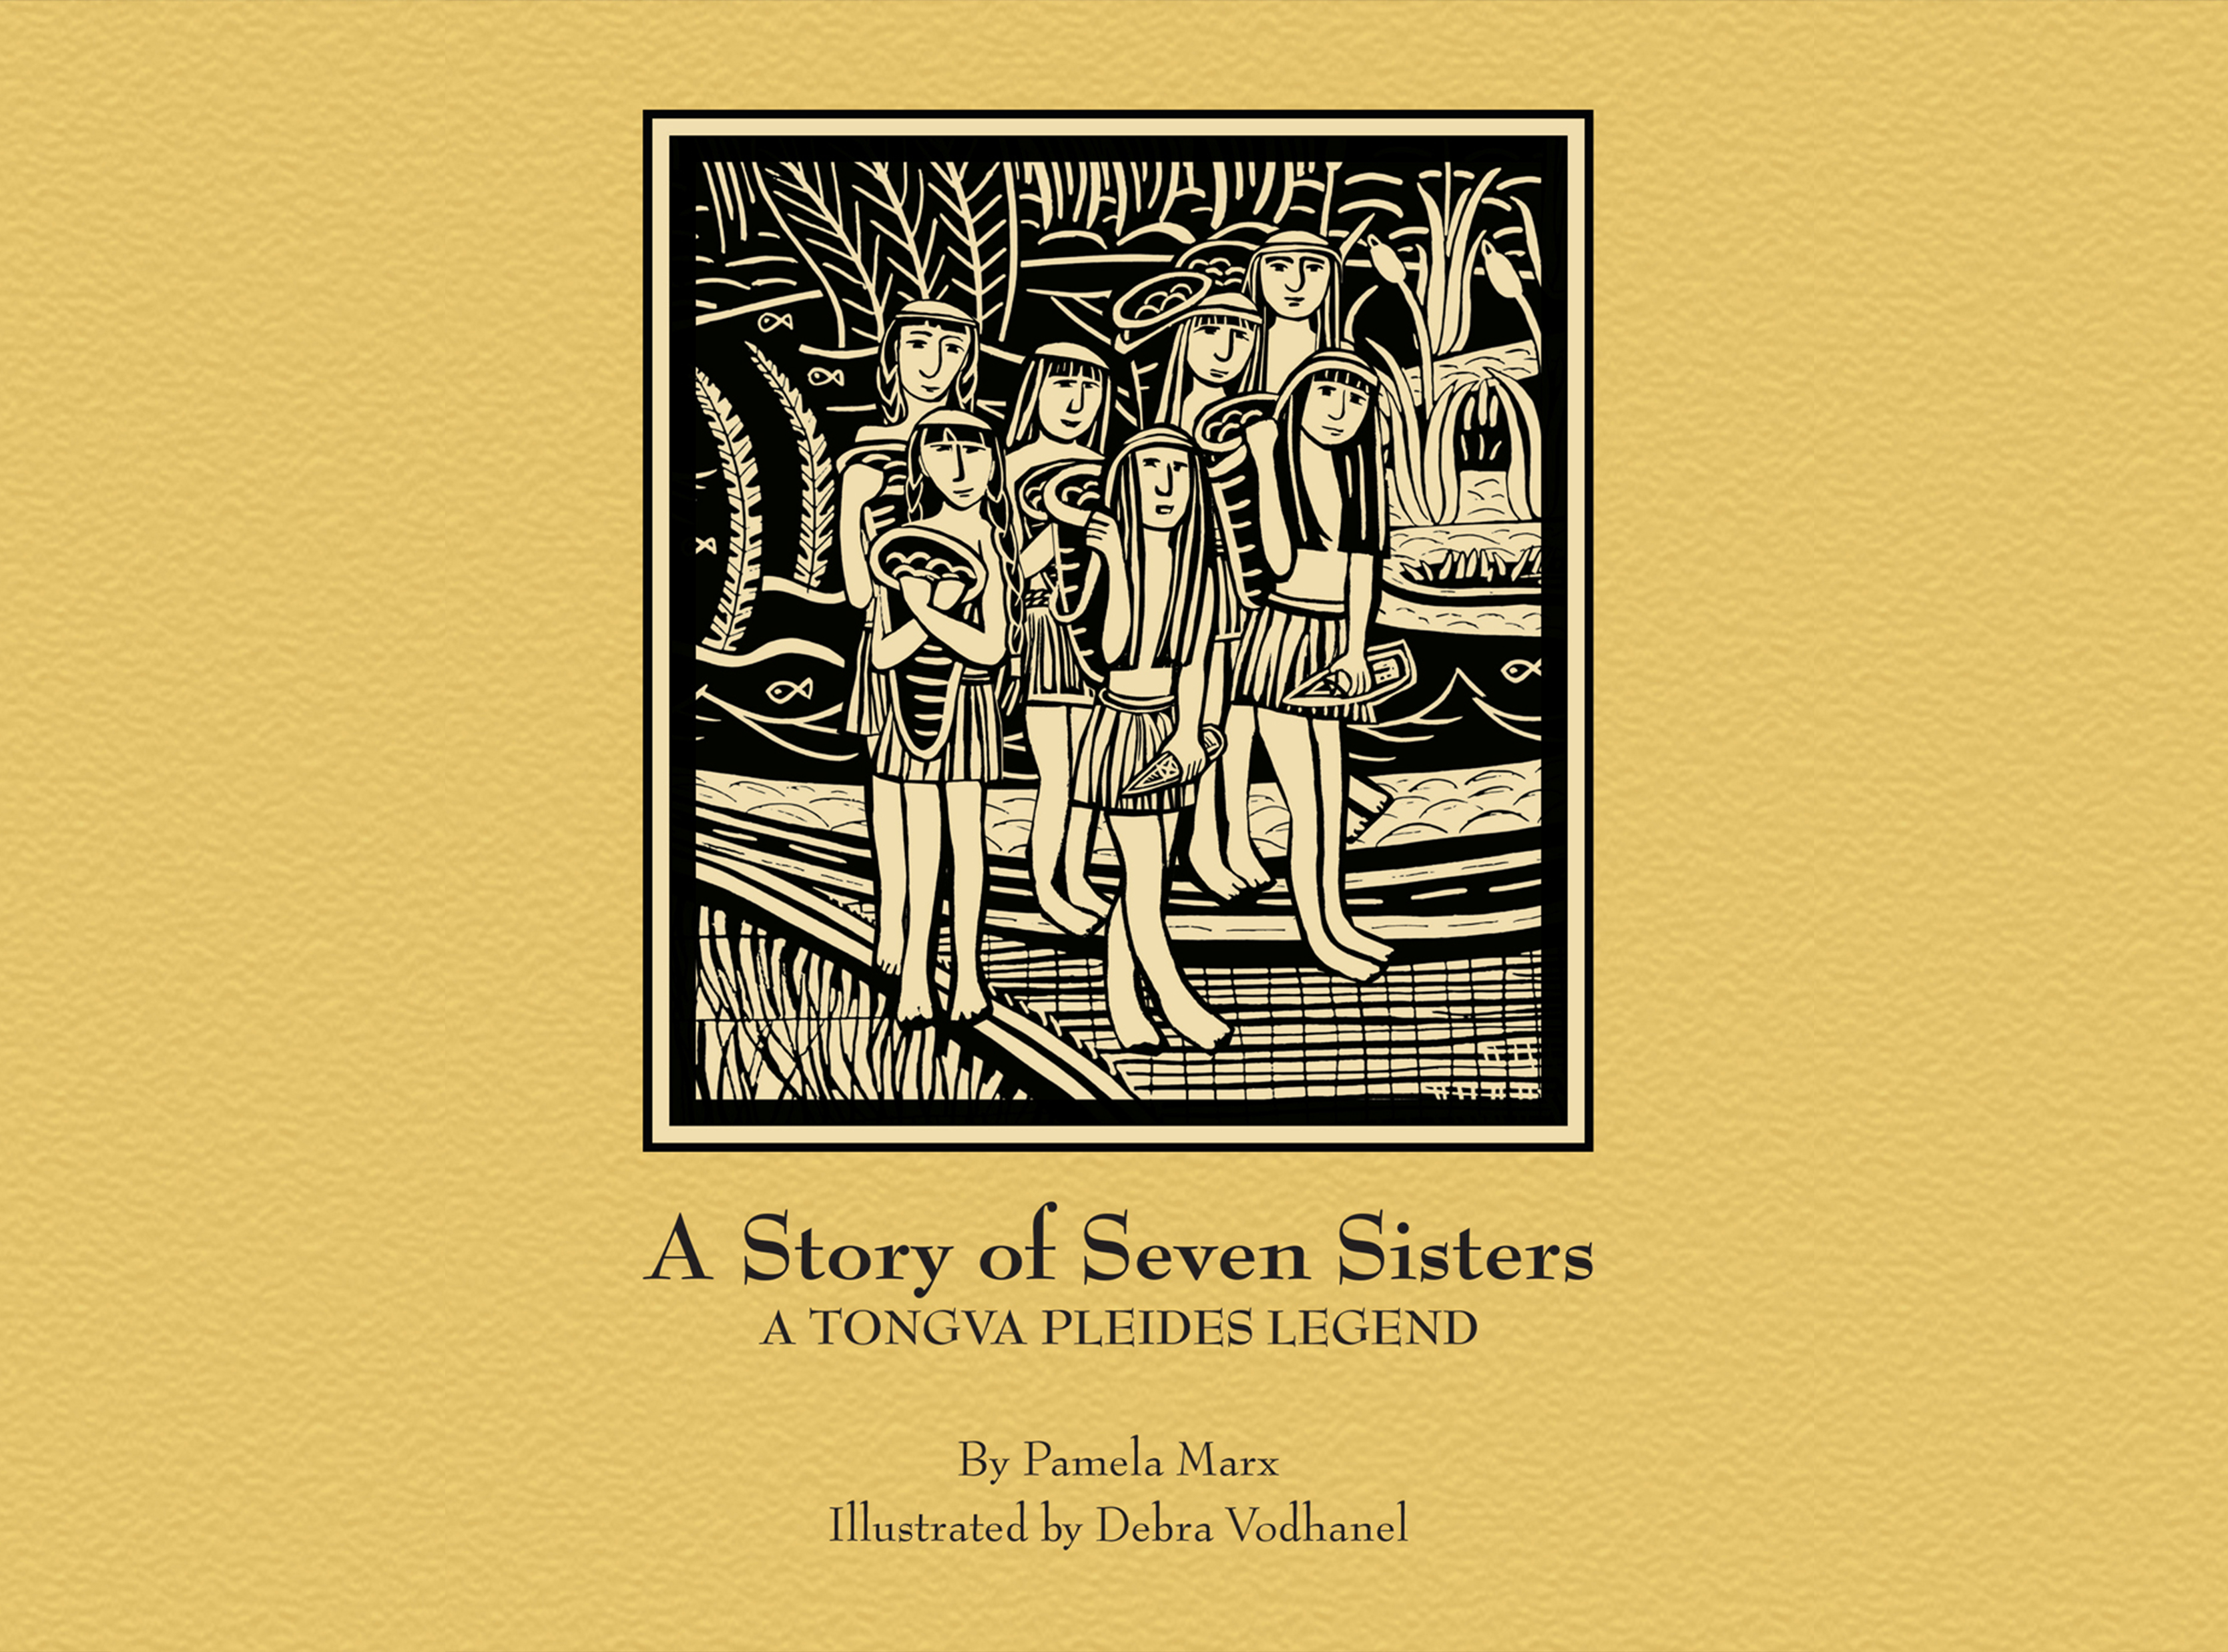 A Story of Seven Sisters